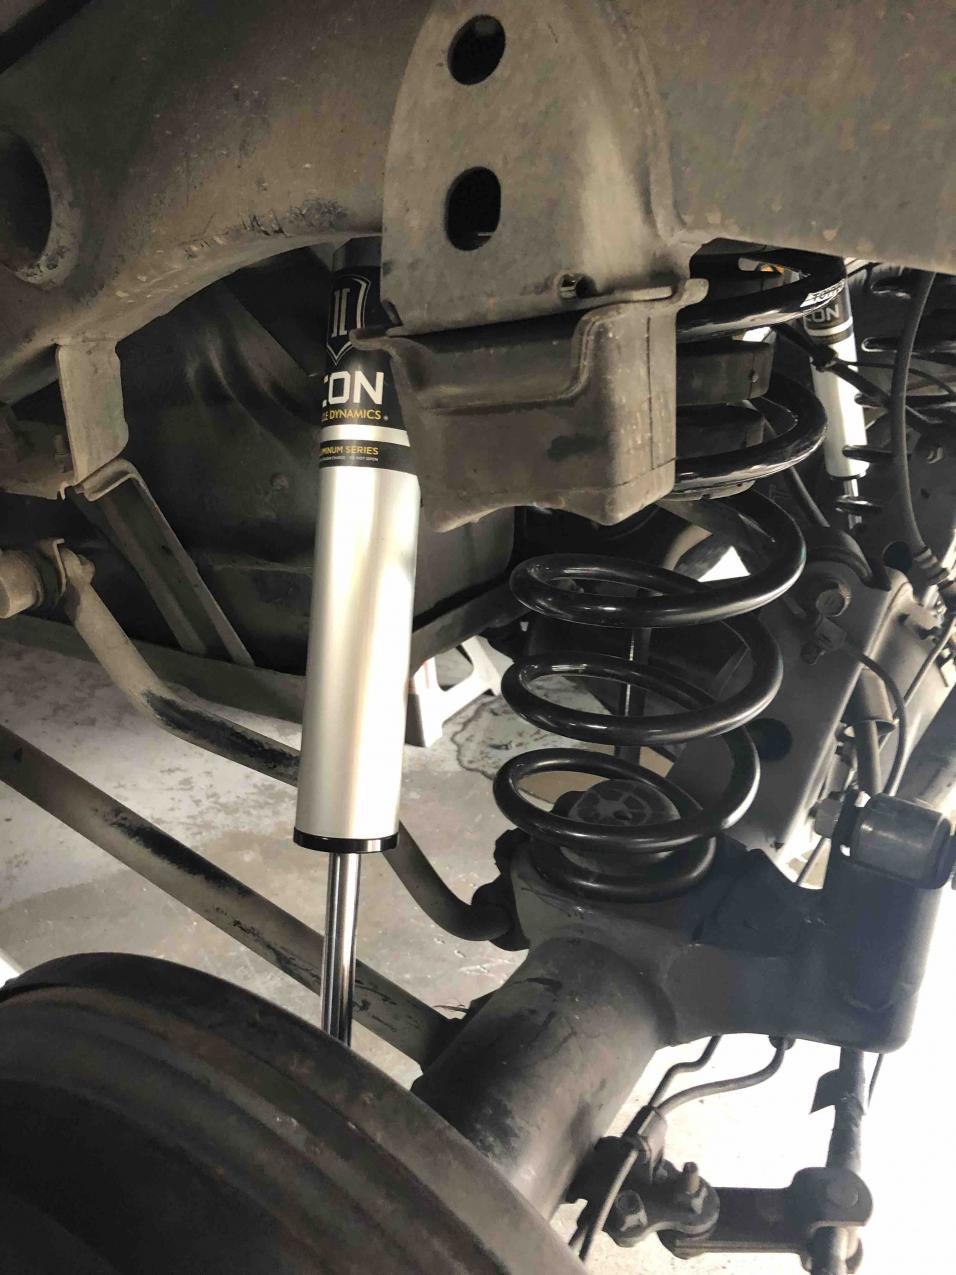 Best Suspension Upgrade for the Money-superflex-2-0-icons-jpg